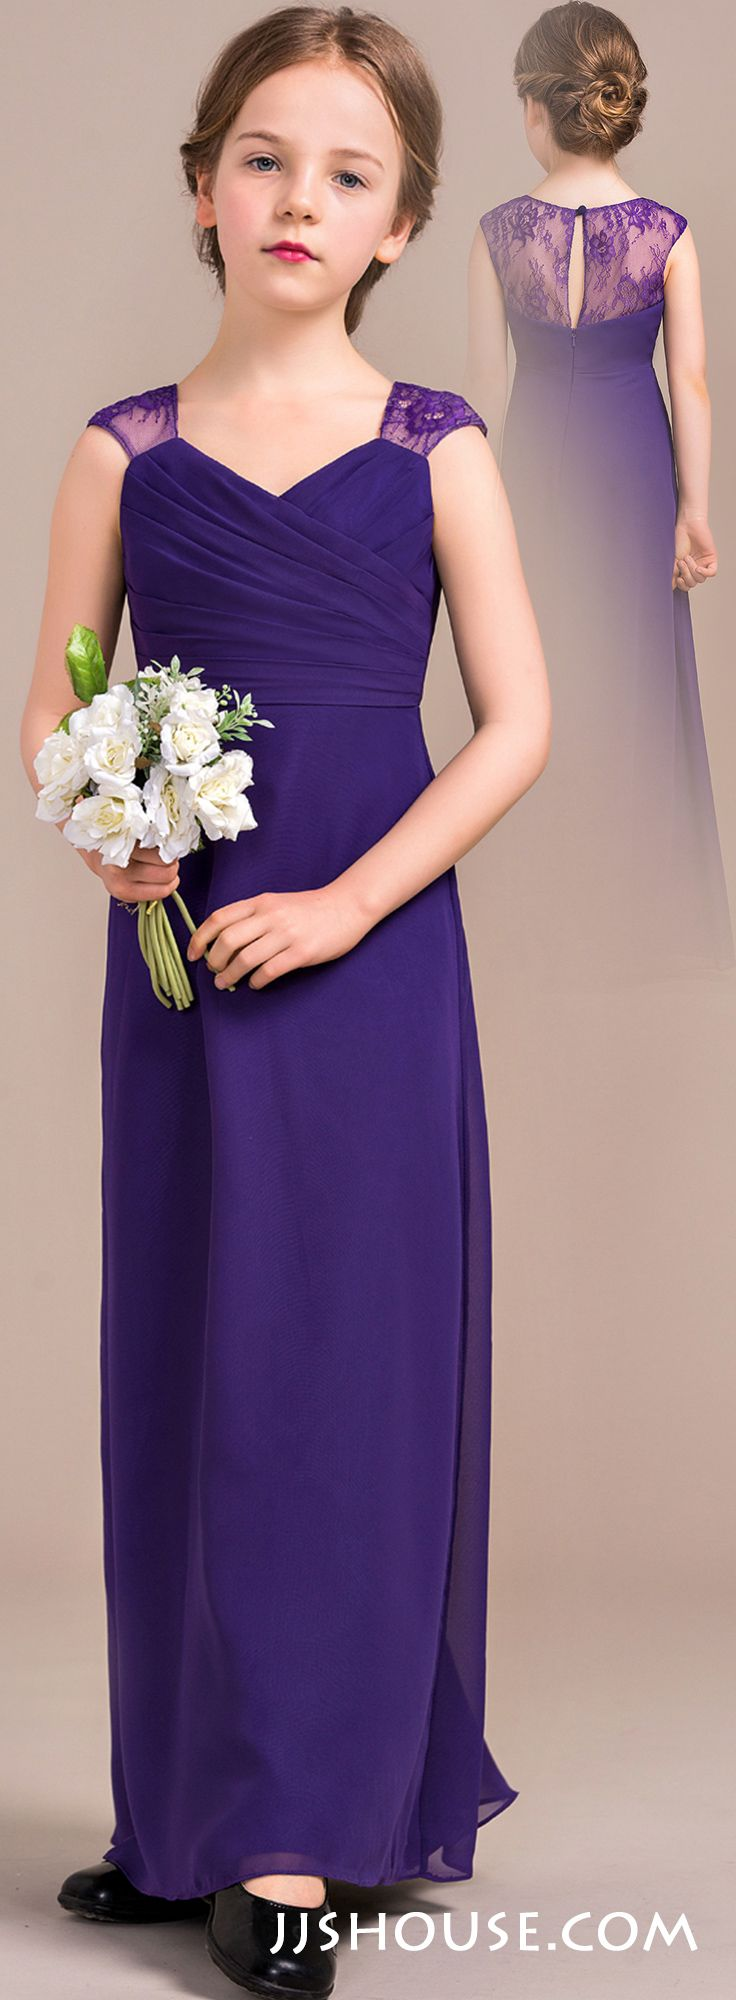 Best 25 junior bridesmaid dresses ideas on pinterest junior sheathcolumn v neck floor length ruffle zipper up covered button cap straps sleeveless no regency general chiffon junior bridesmaid dress ombrellifo Image collections